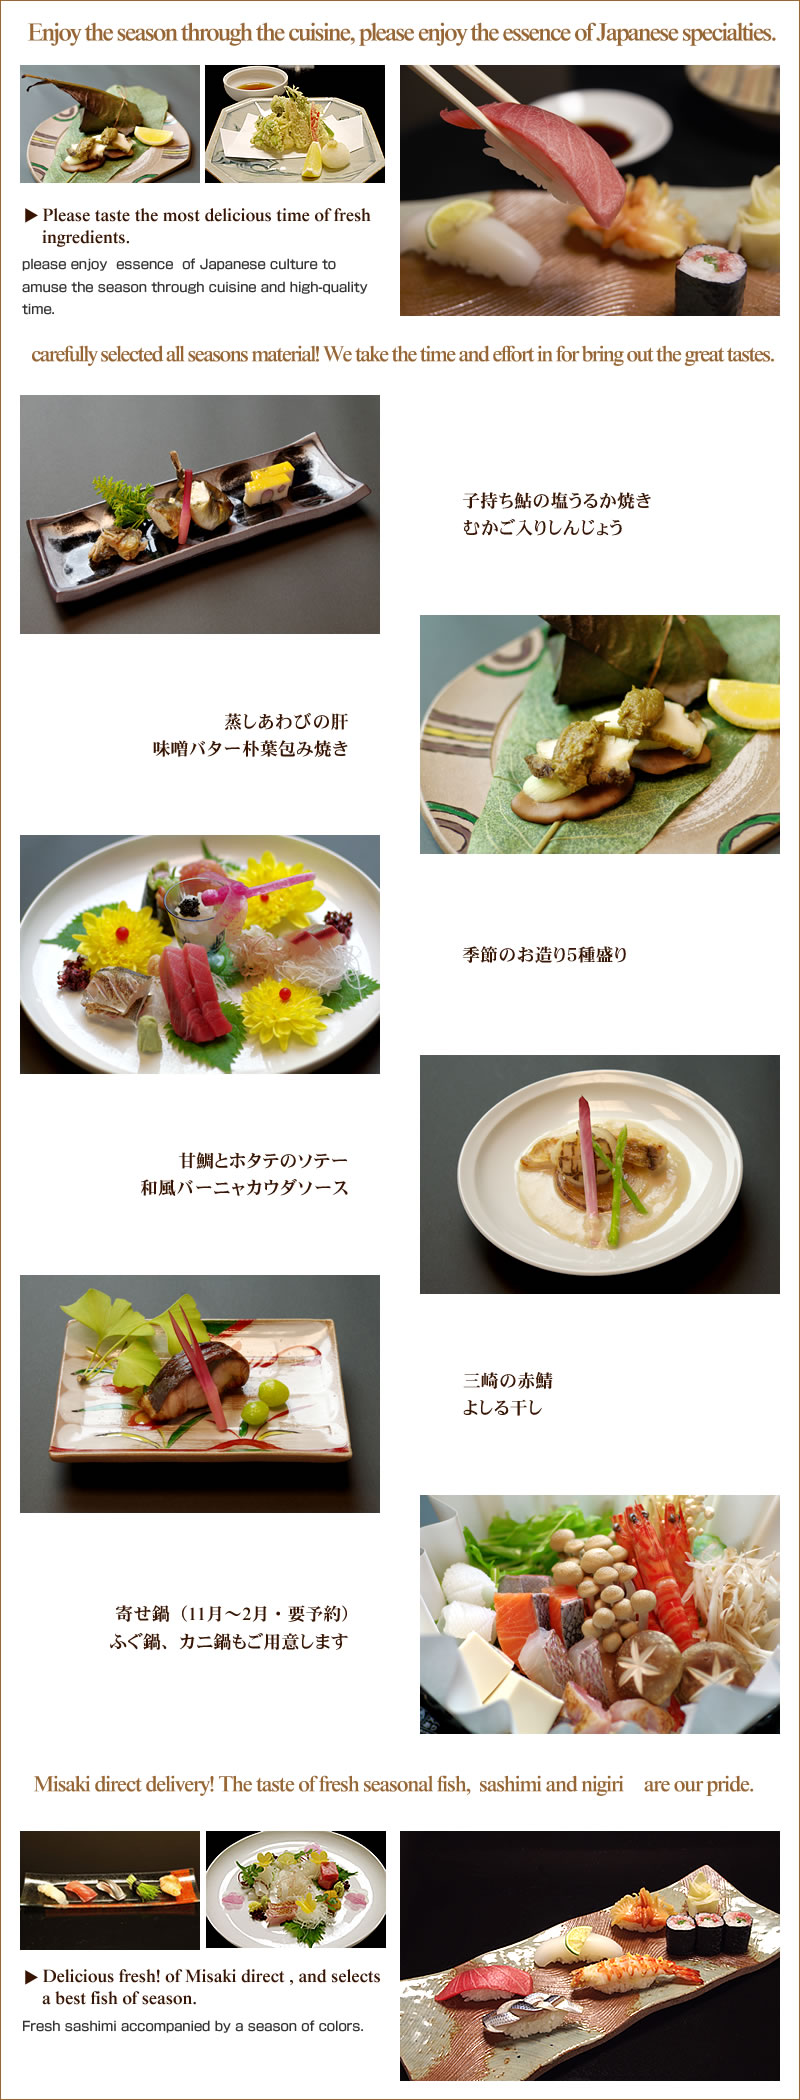 Enjoy the season through the cuisine, please enjoy the essence of Japanese specialties.Please taste  the most delicious time of fresh ingredients.please enjoy  essence  of Japanese culture to amuse the season through cuisine and high-quality time.carefully selected all seasons material! We take the time and effort in for bring out the great tastes.Misaki direct delivery! The taste of fresh seasonal fish,  sashimi and nigiri are our pride.Delicious fresh! of Misaki direct , and selects a best fish of season.Fresh sashimi accompanied by a season of colors.